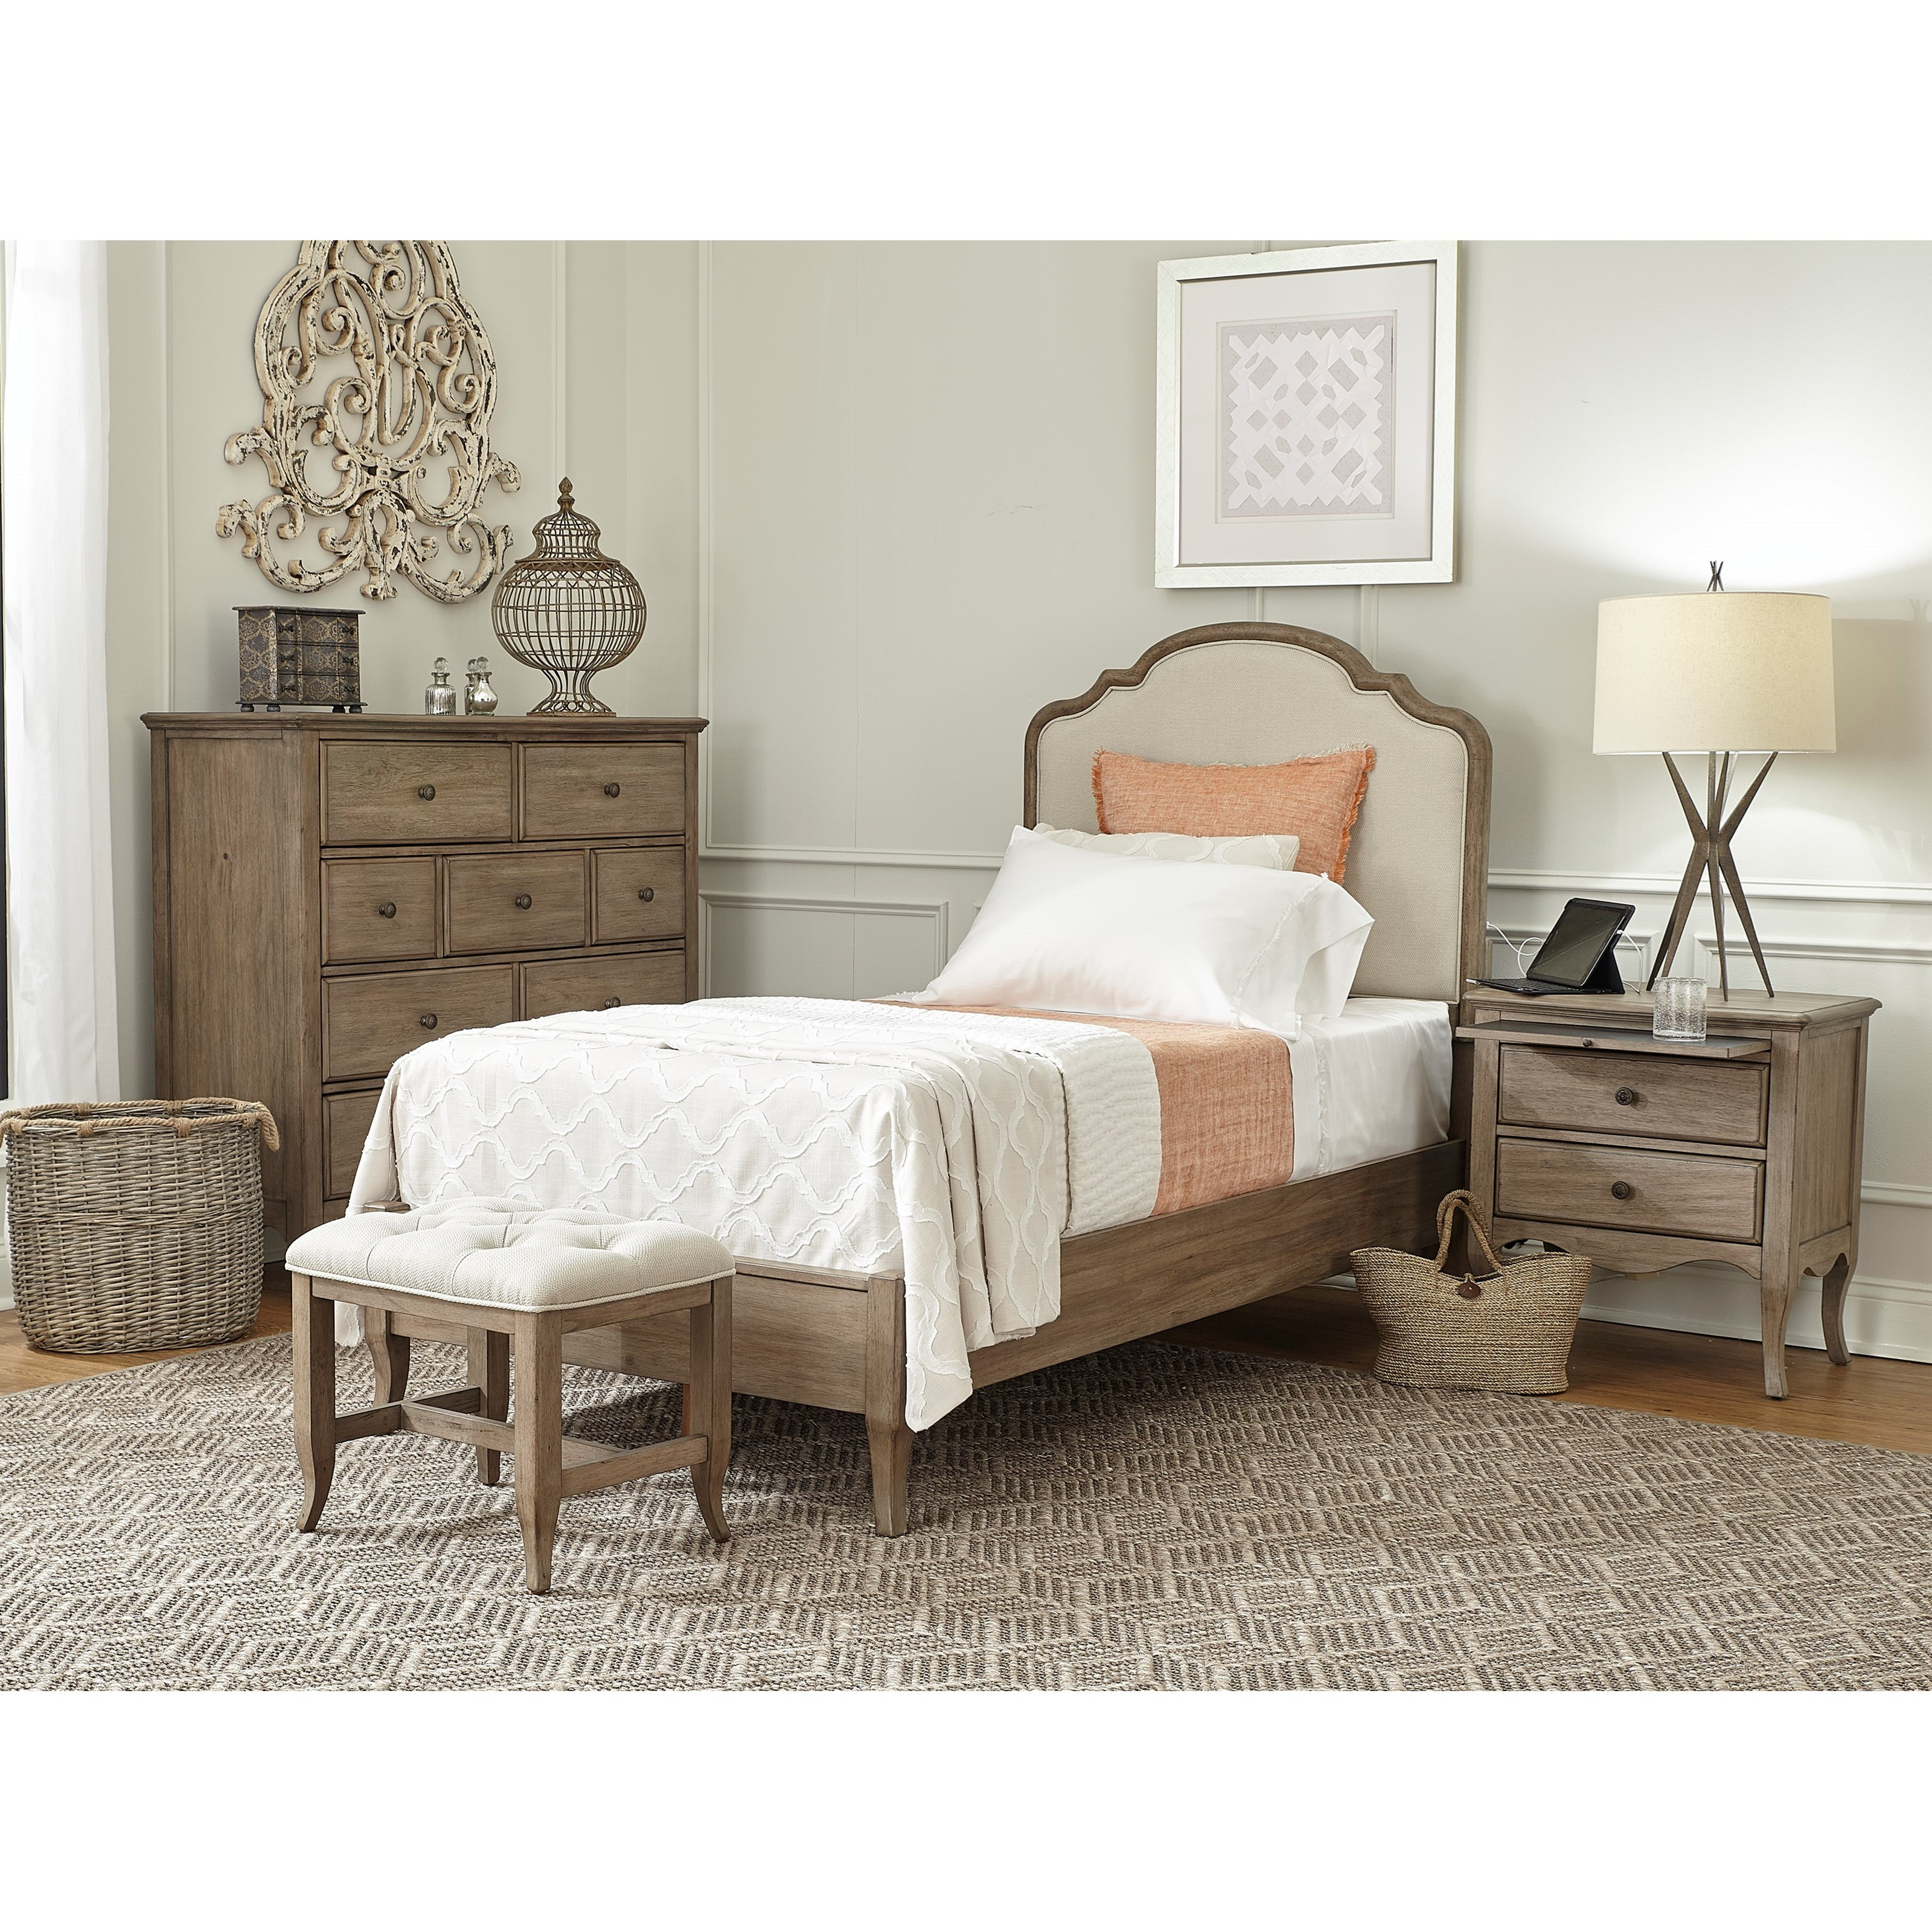 Provence Twin Bedroom Group by Aspenhome at Baer's Furniture